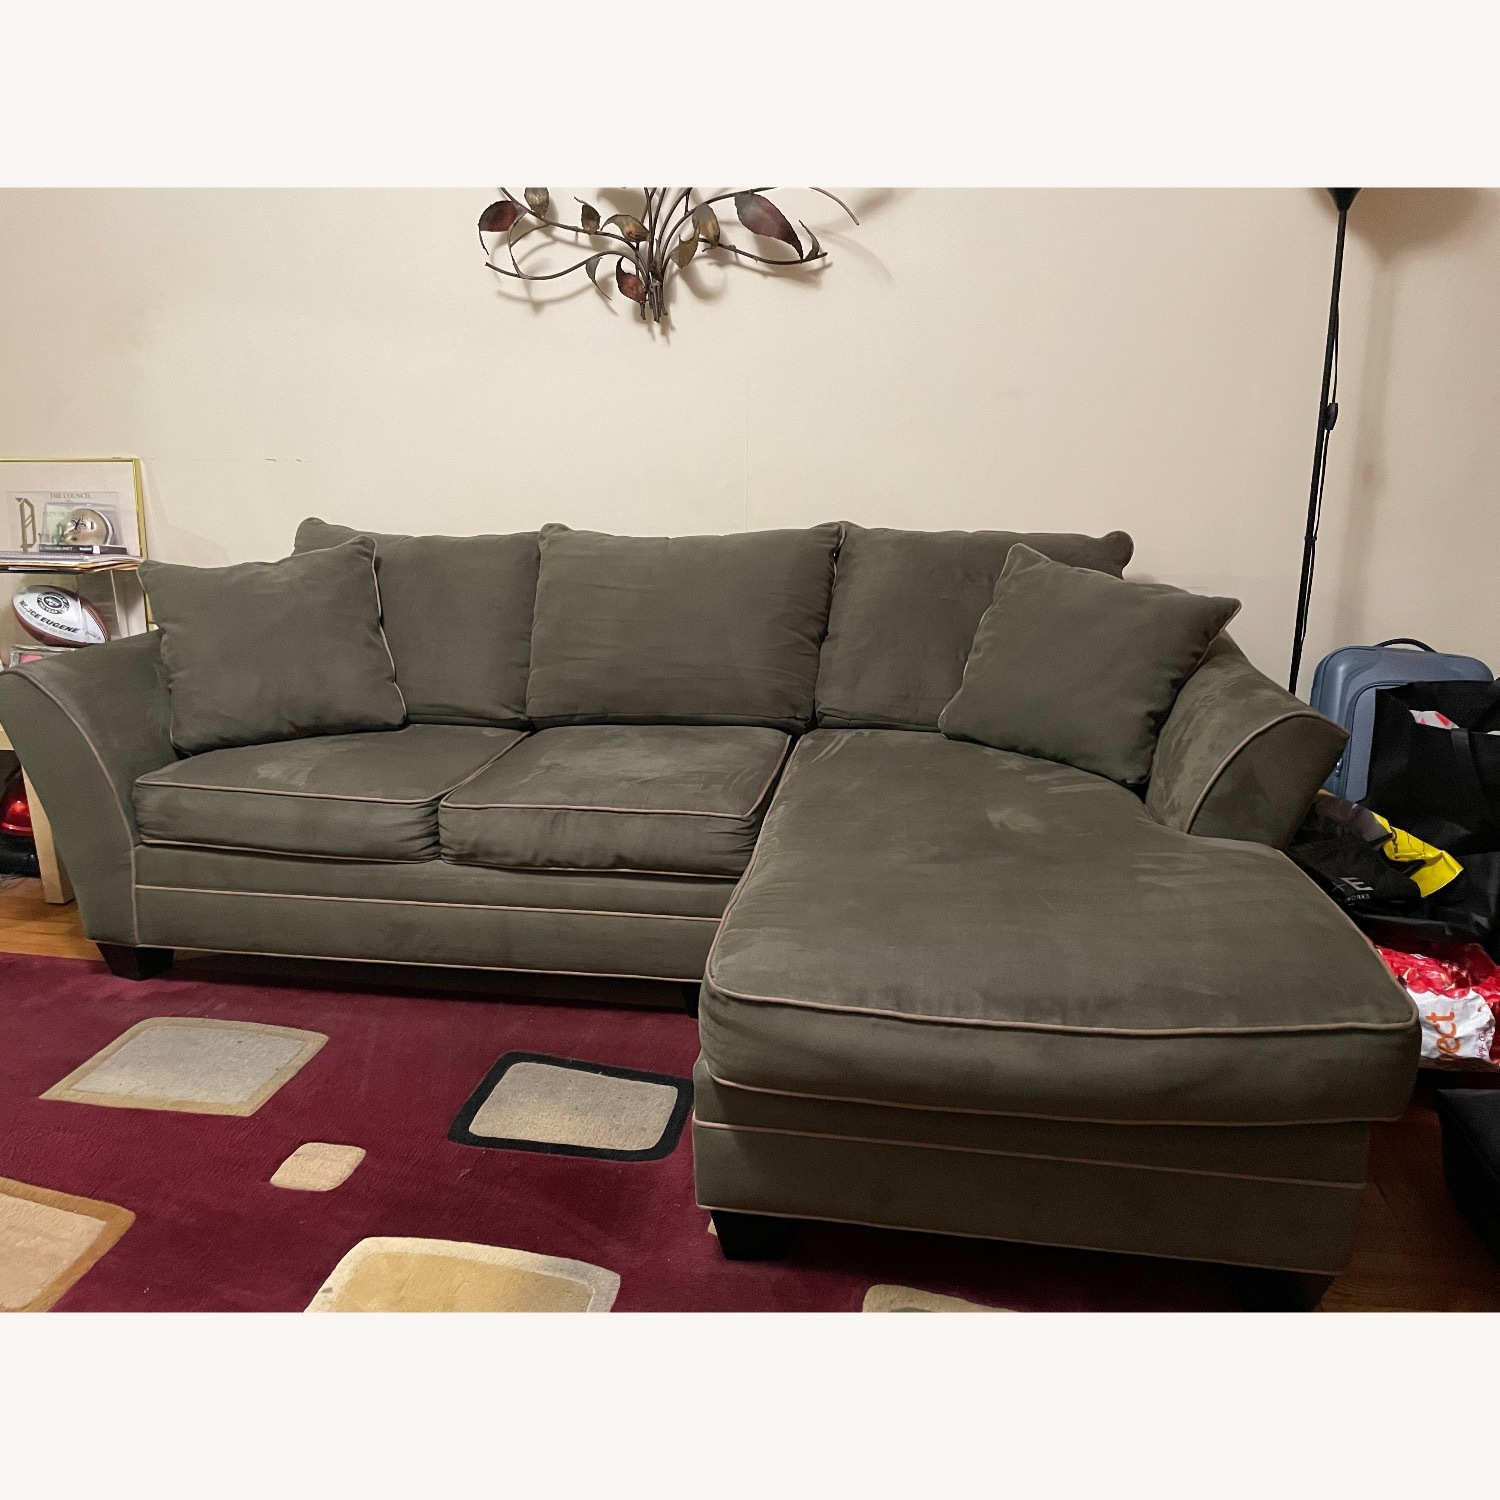 Raymour & Flanigan Foresthill 2-pc.  Sectional Sofa - image-1